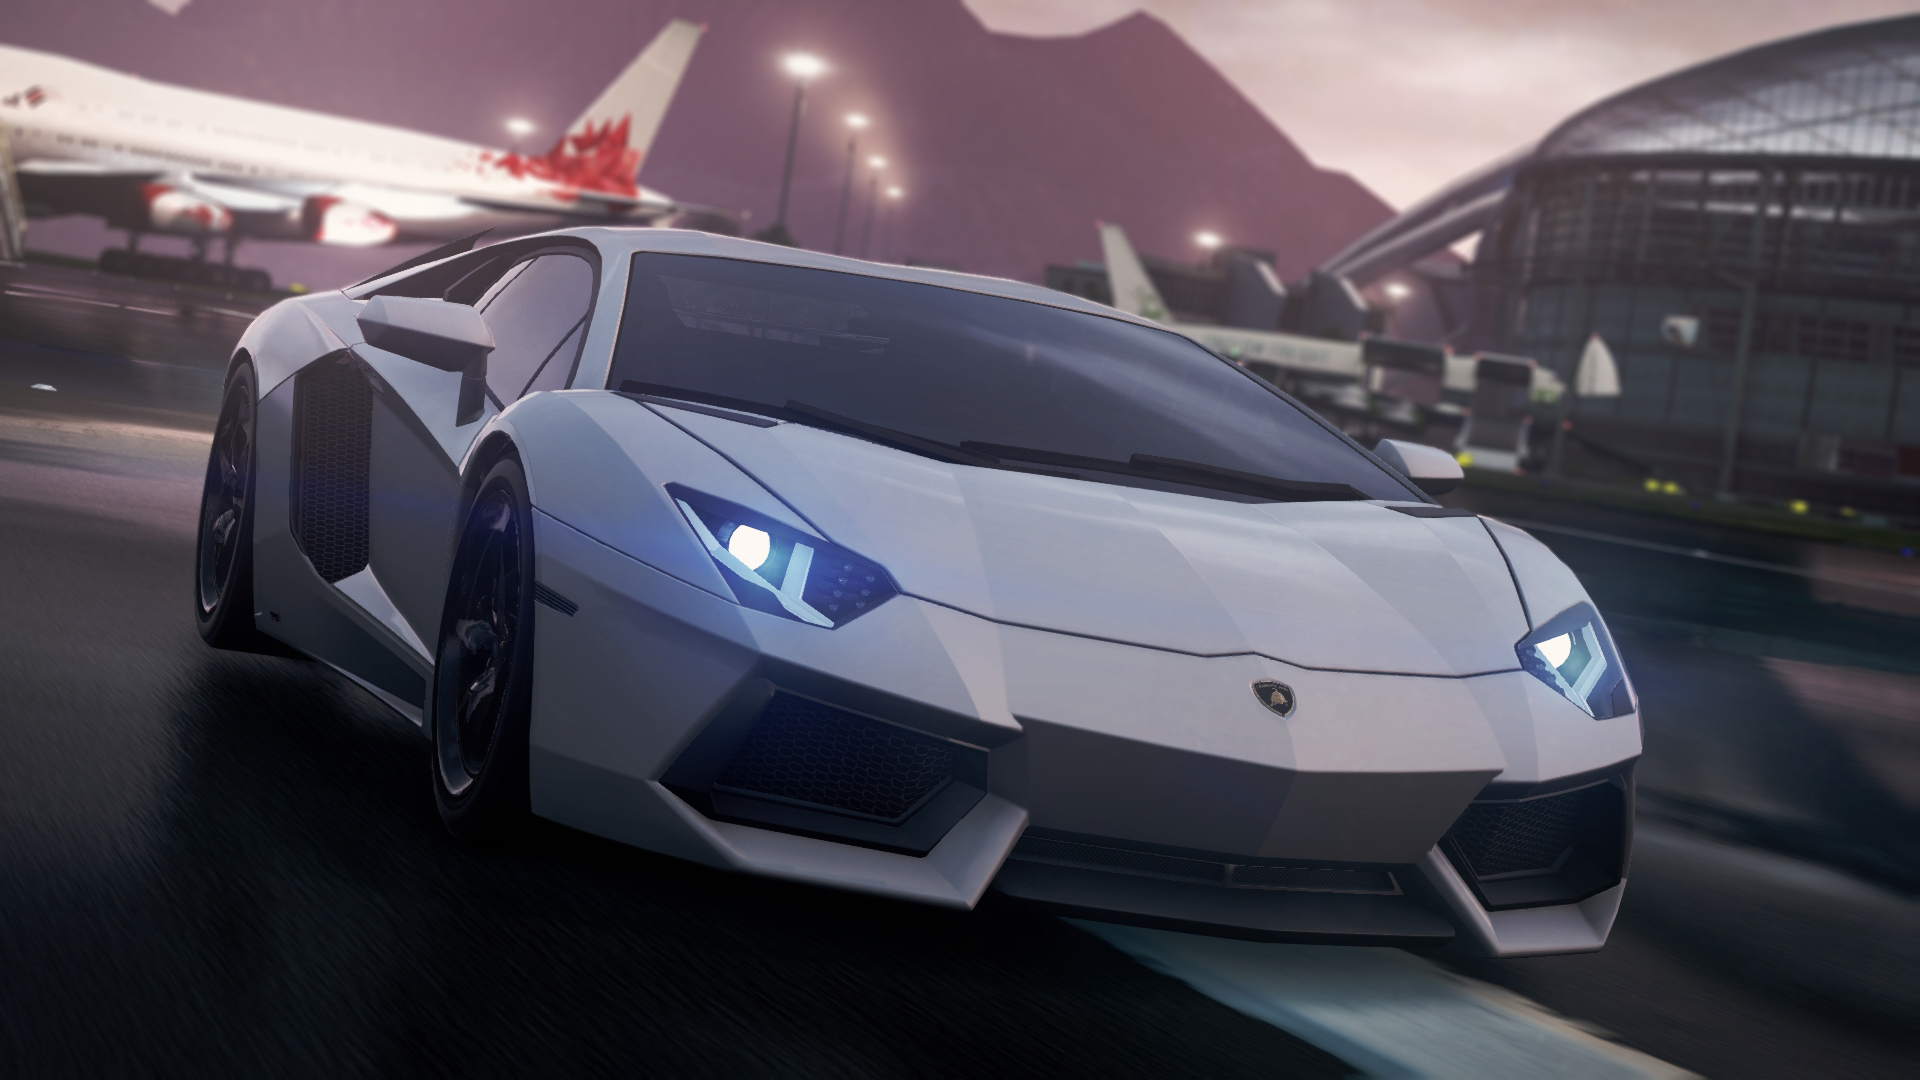 Lamborghini Aventador Lp700 4 Hd Wallpaper Background Image